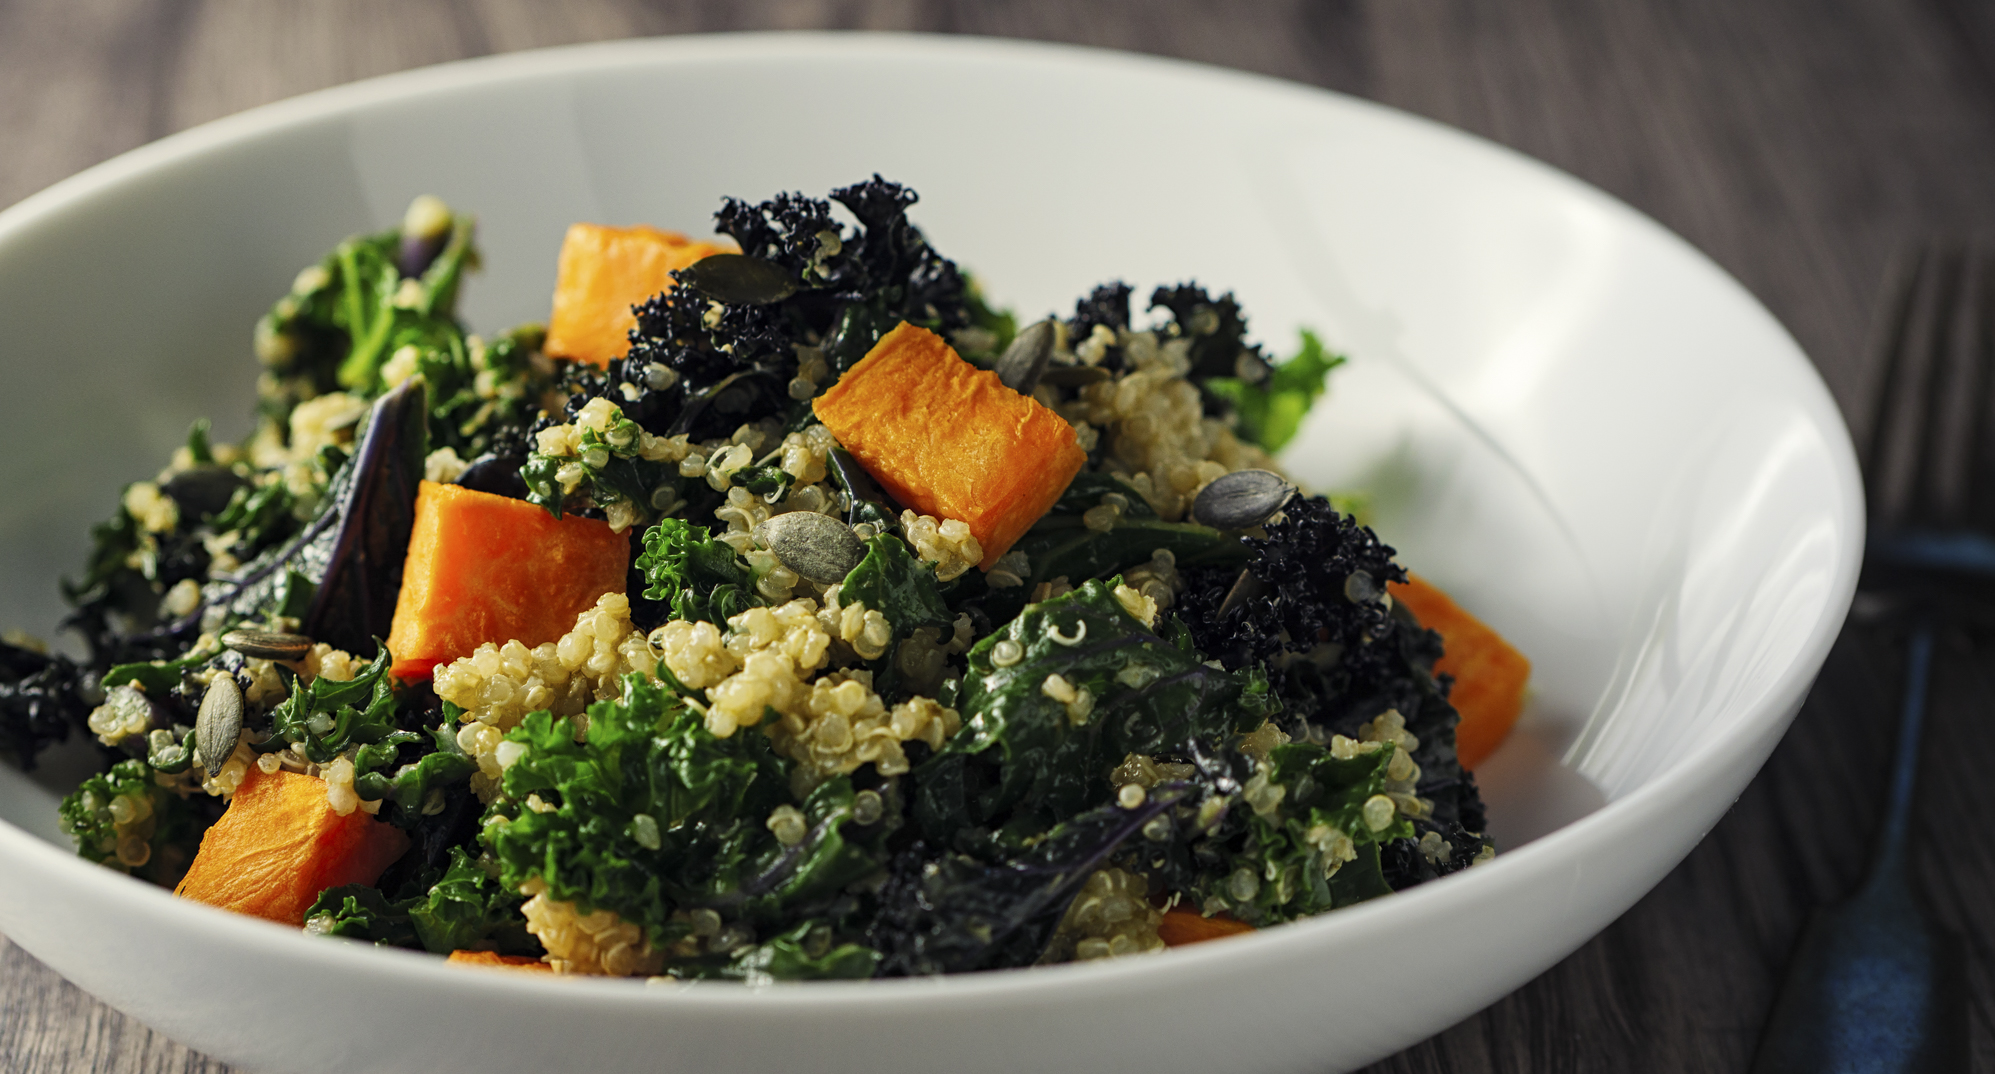 Quinoa and kale salad with butternut squash